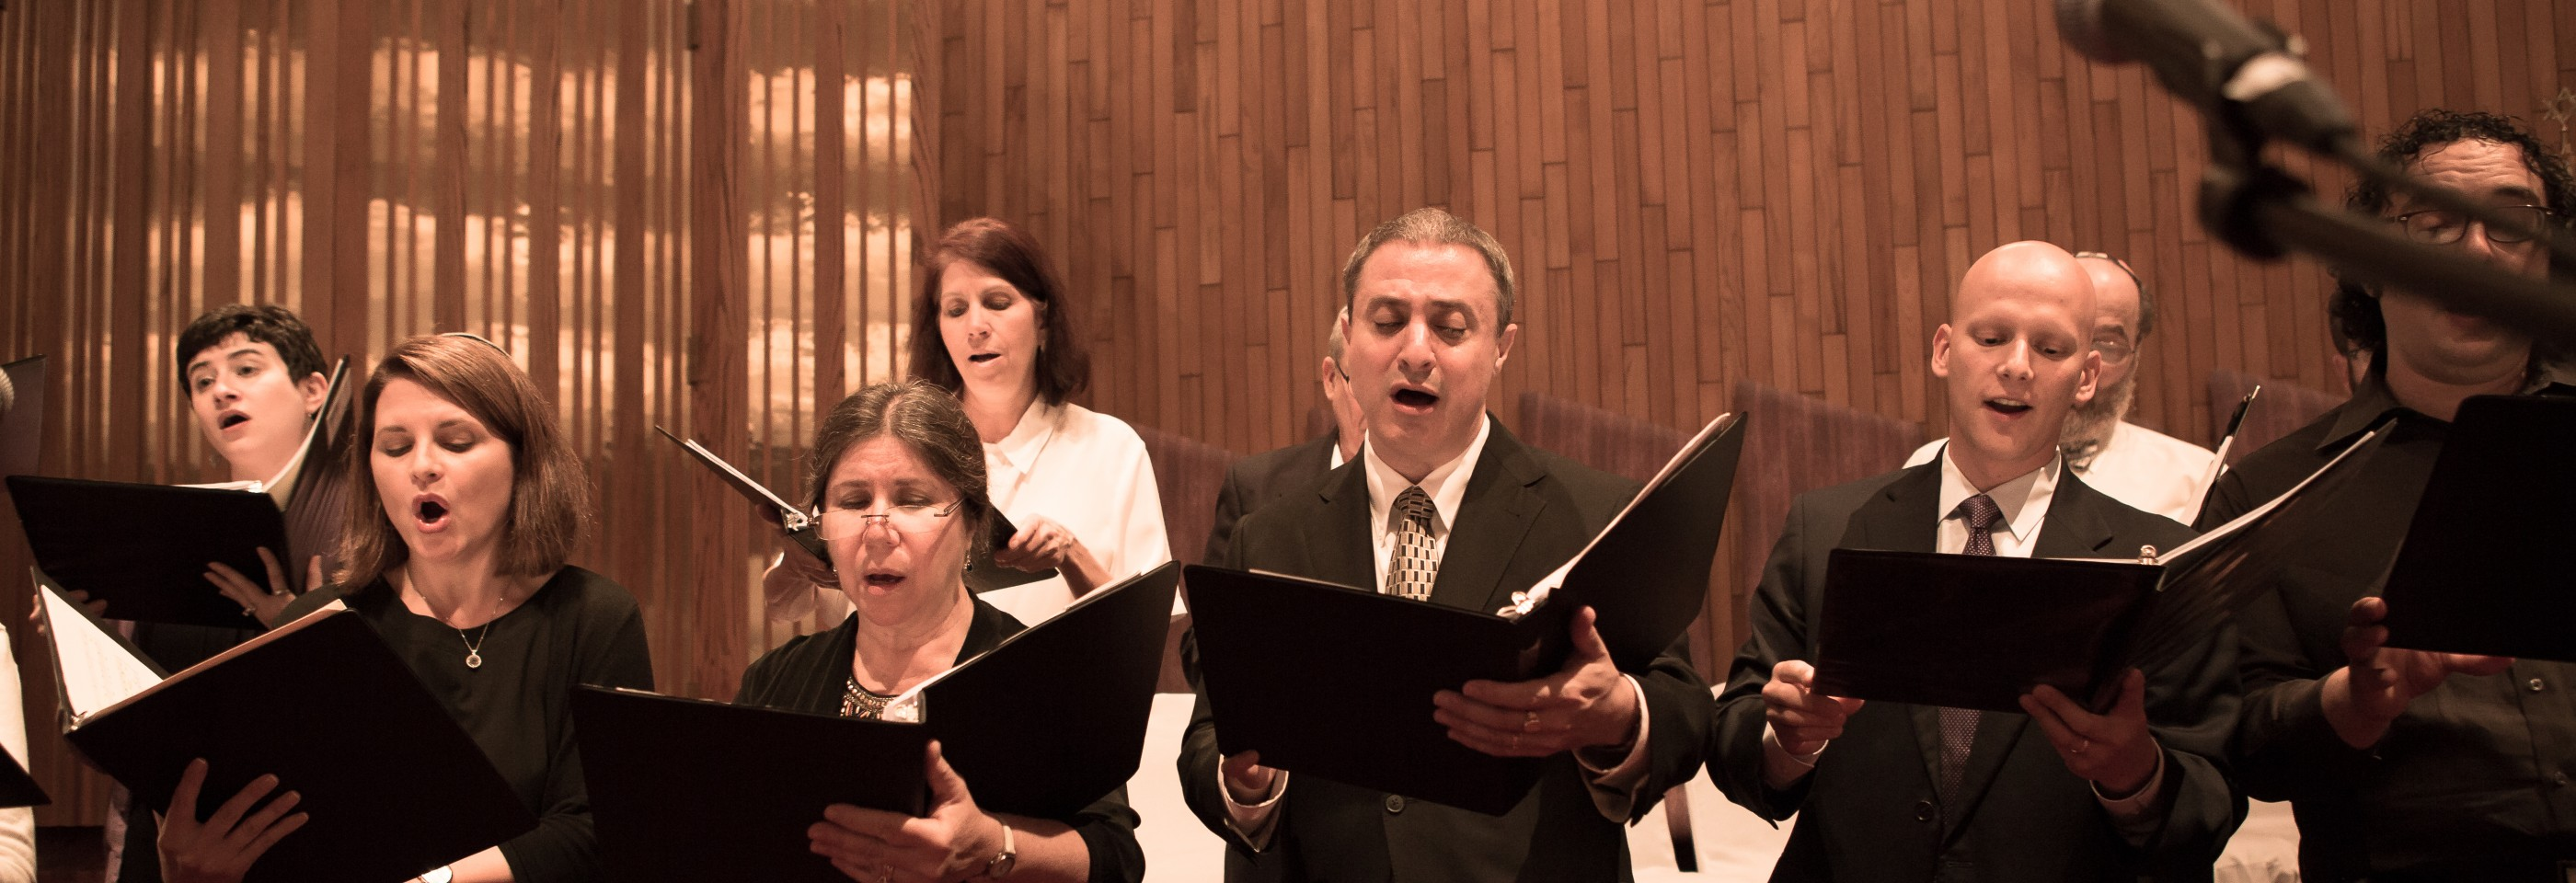 Cantors singing in a choir